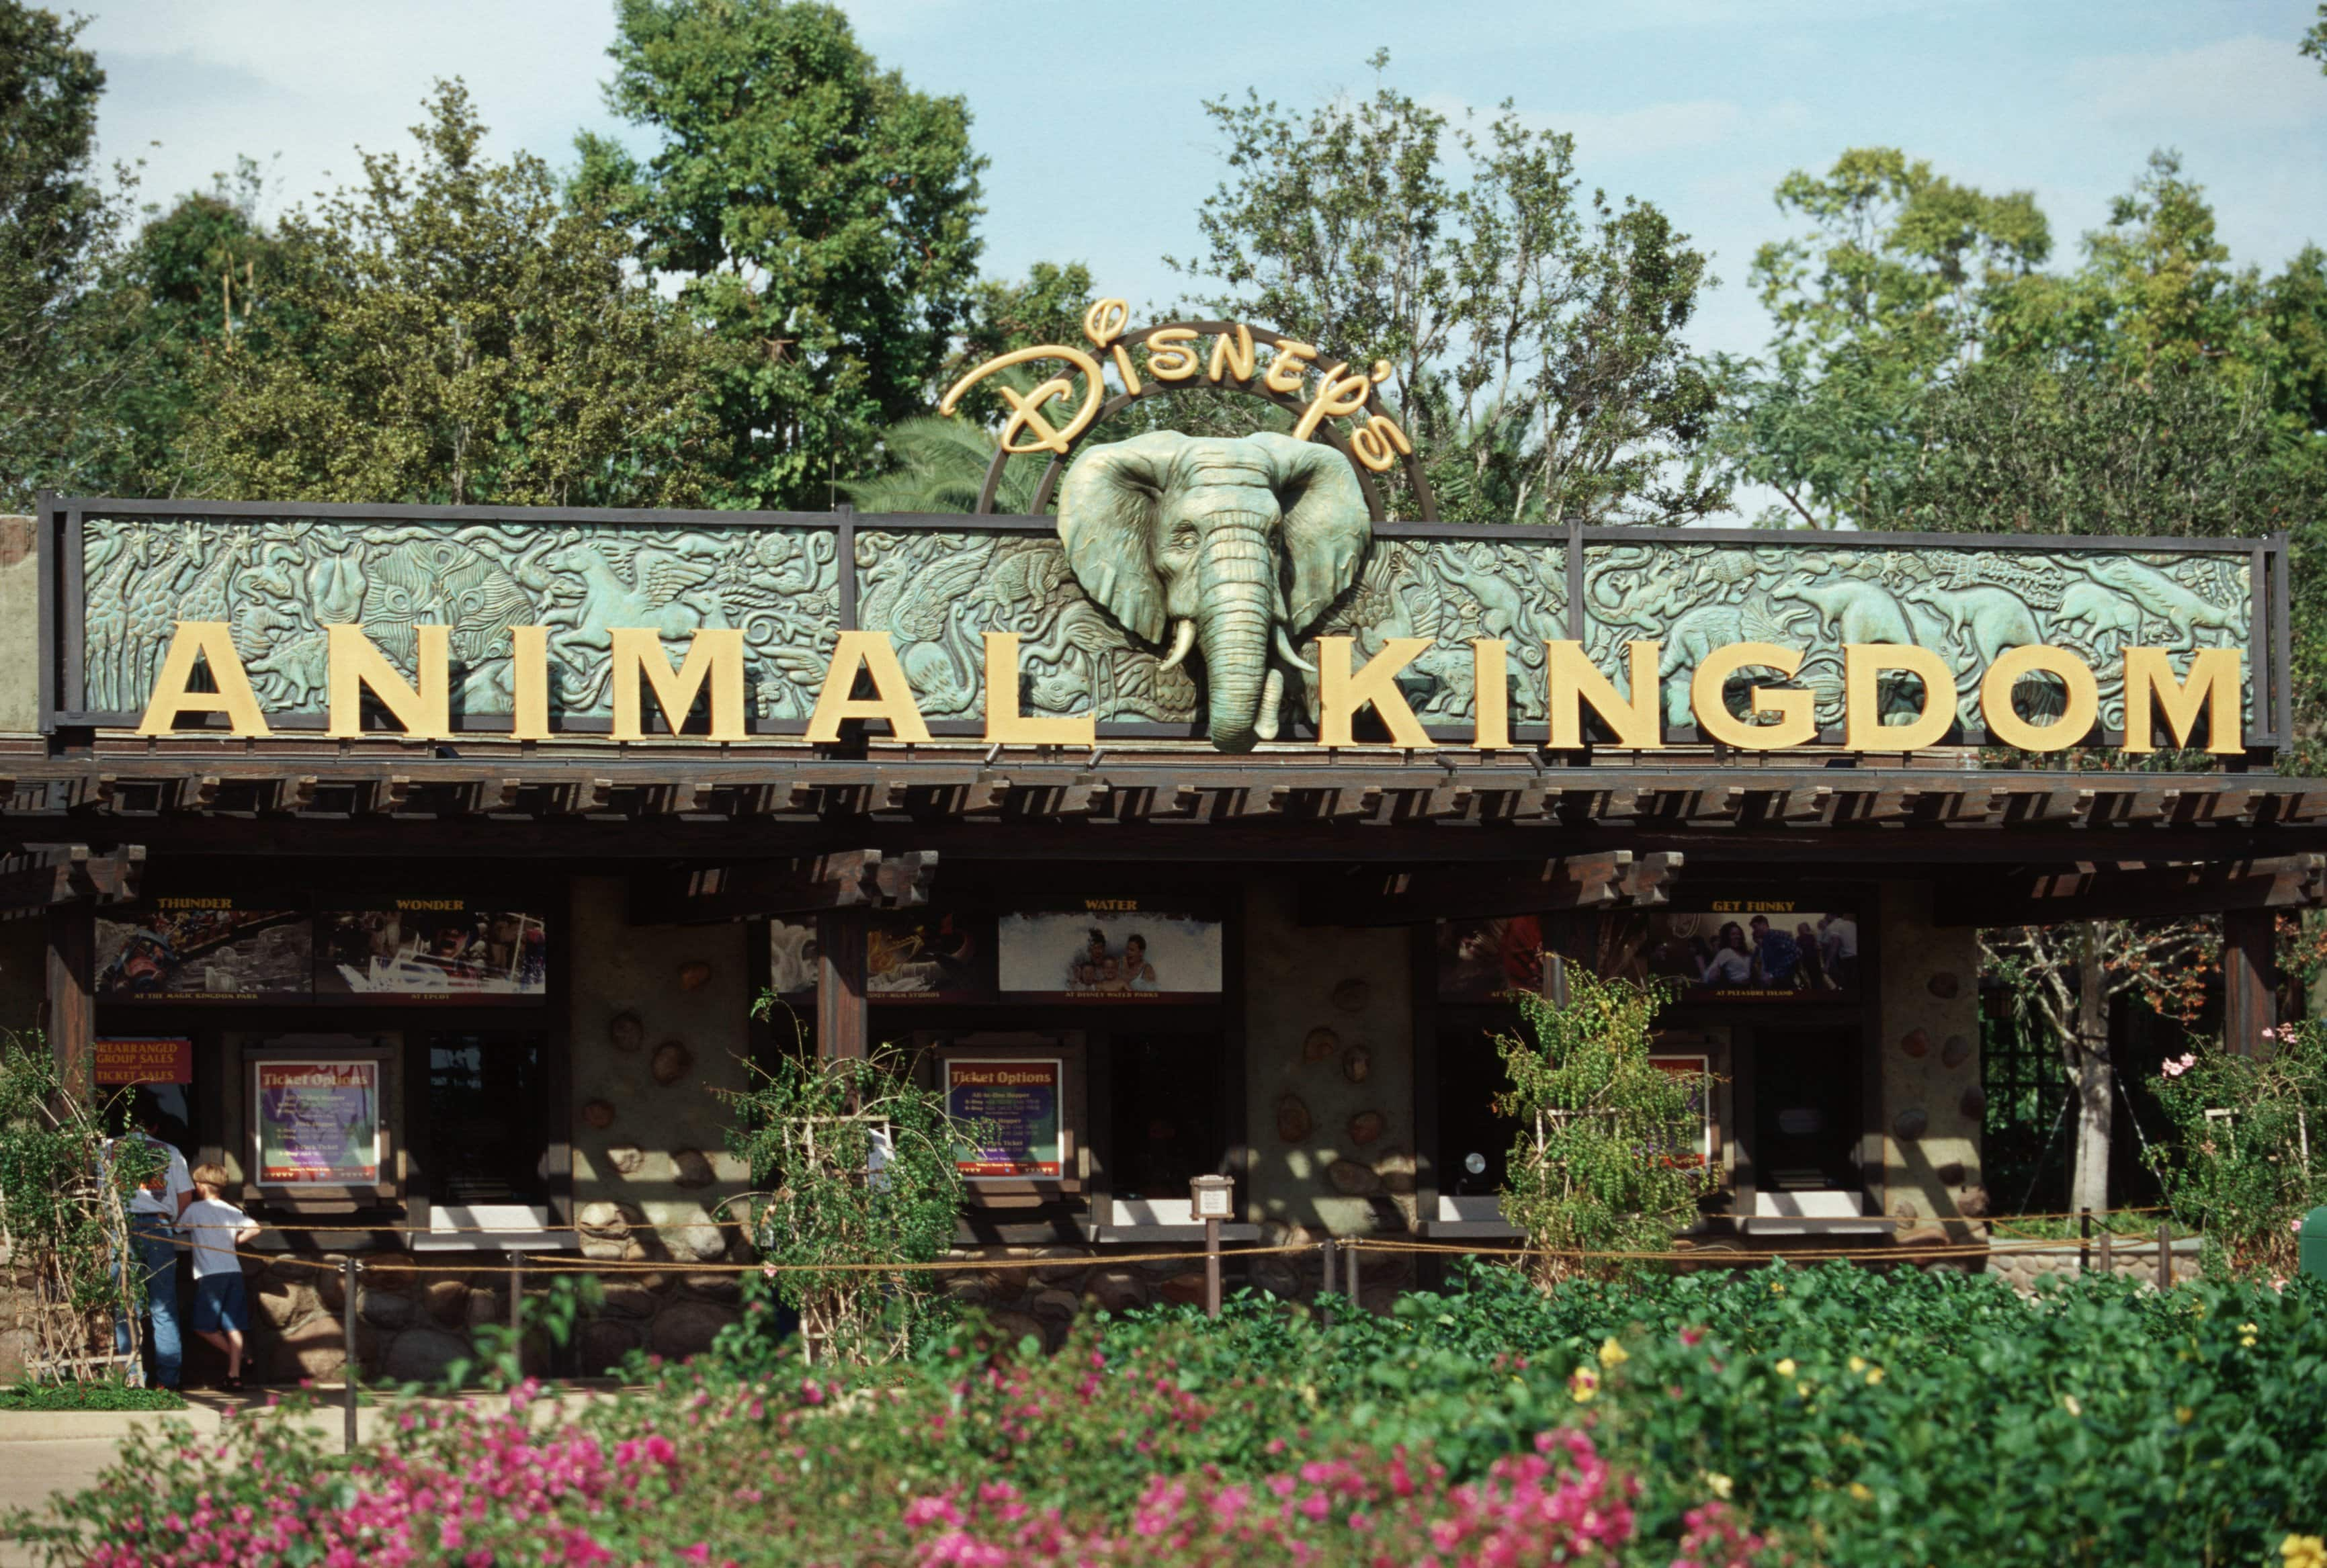 Sign Up For A Chance To Tour Backstage At Disney S Animal Kingdom Theme Park Disney Parks Blog